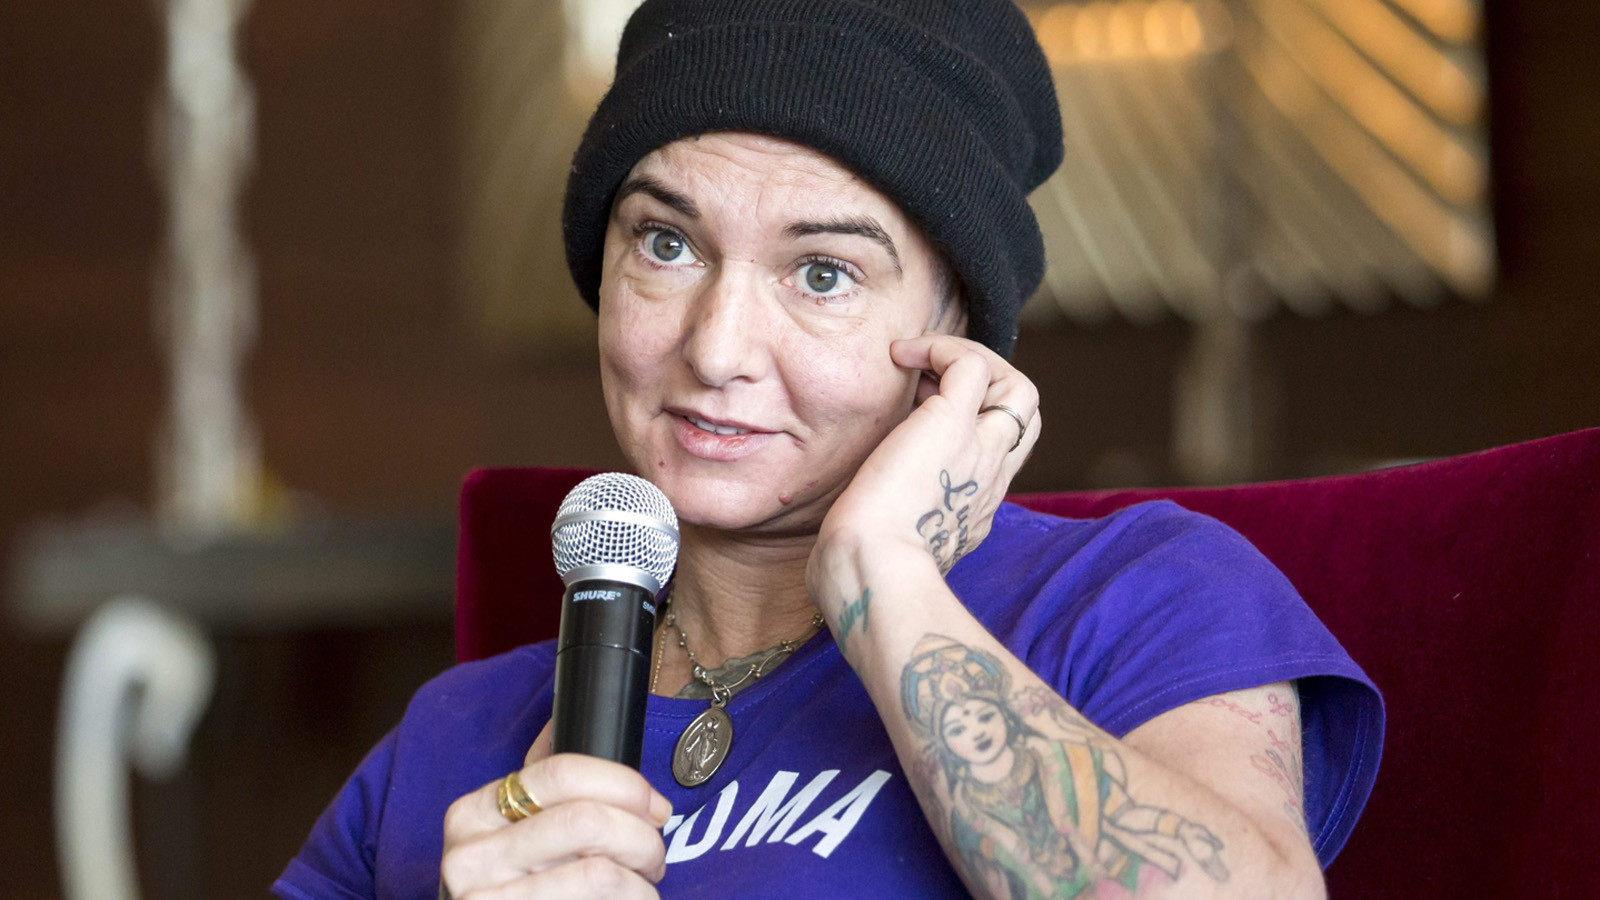 Sinead O'Connor shares a tearful video addressing her mental health struggles